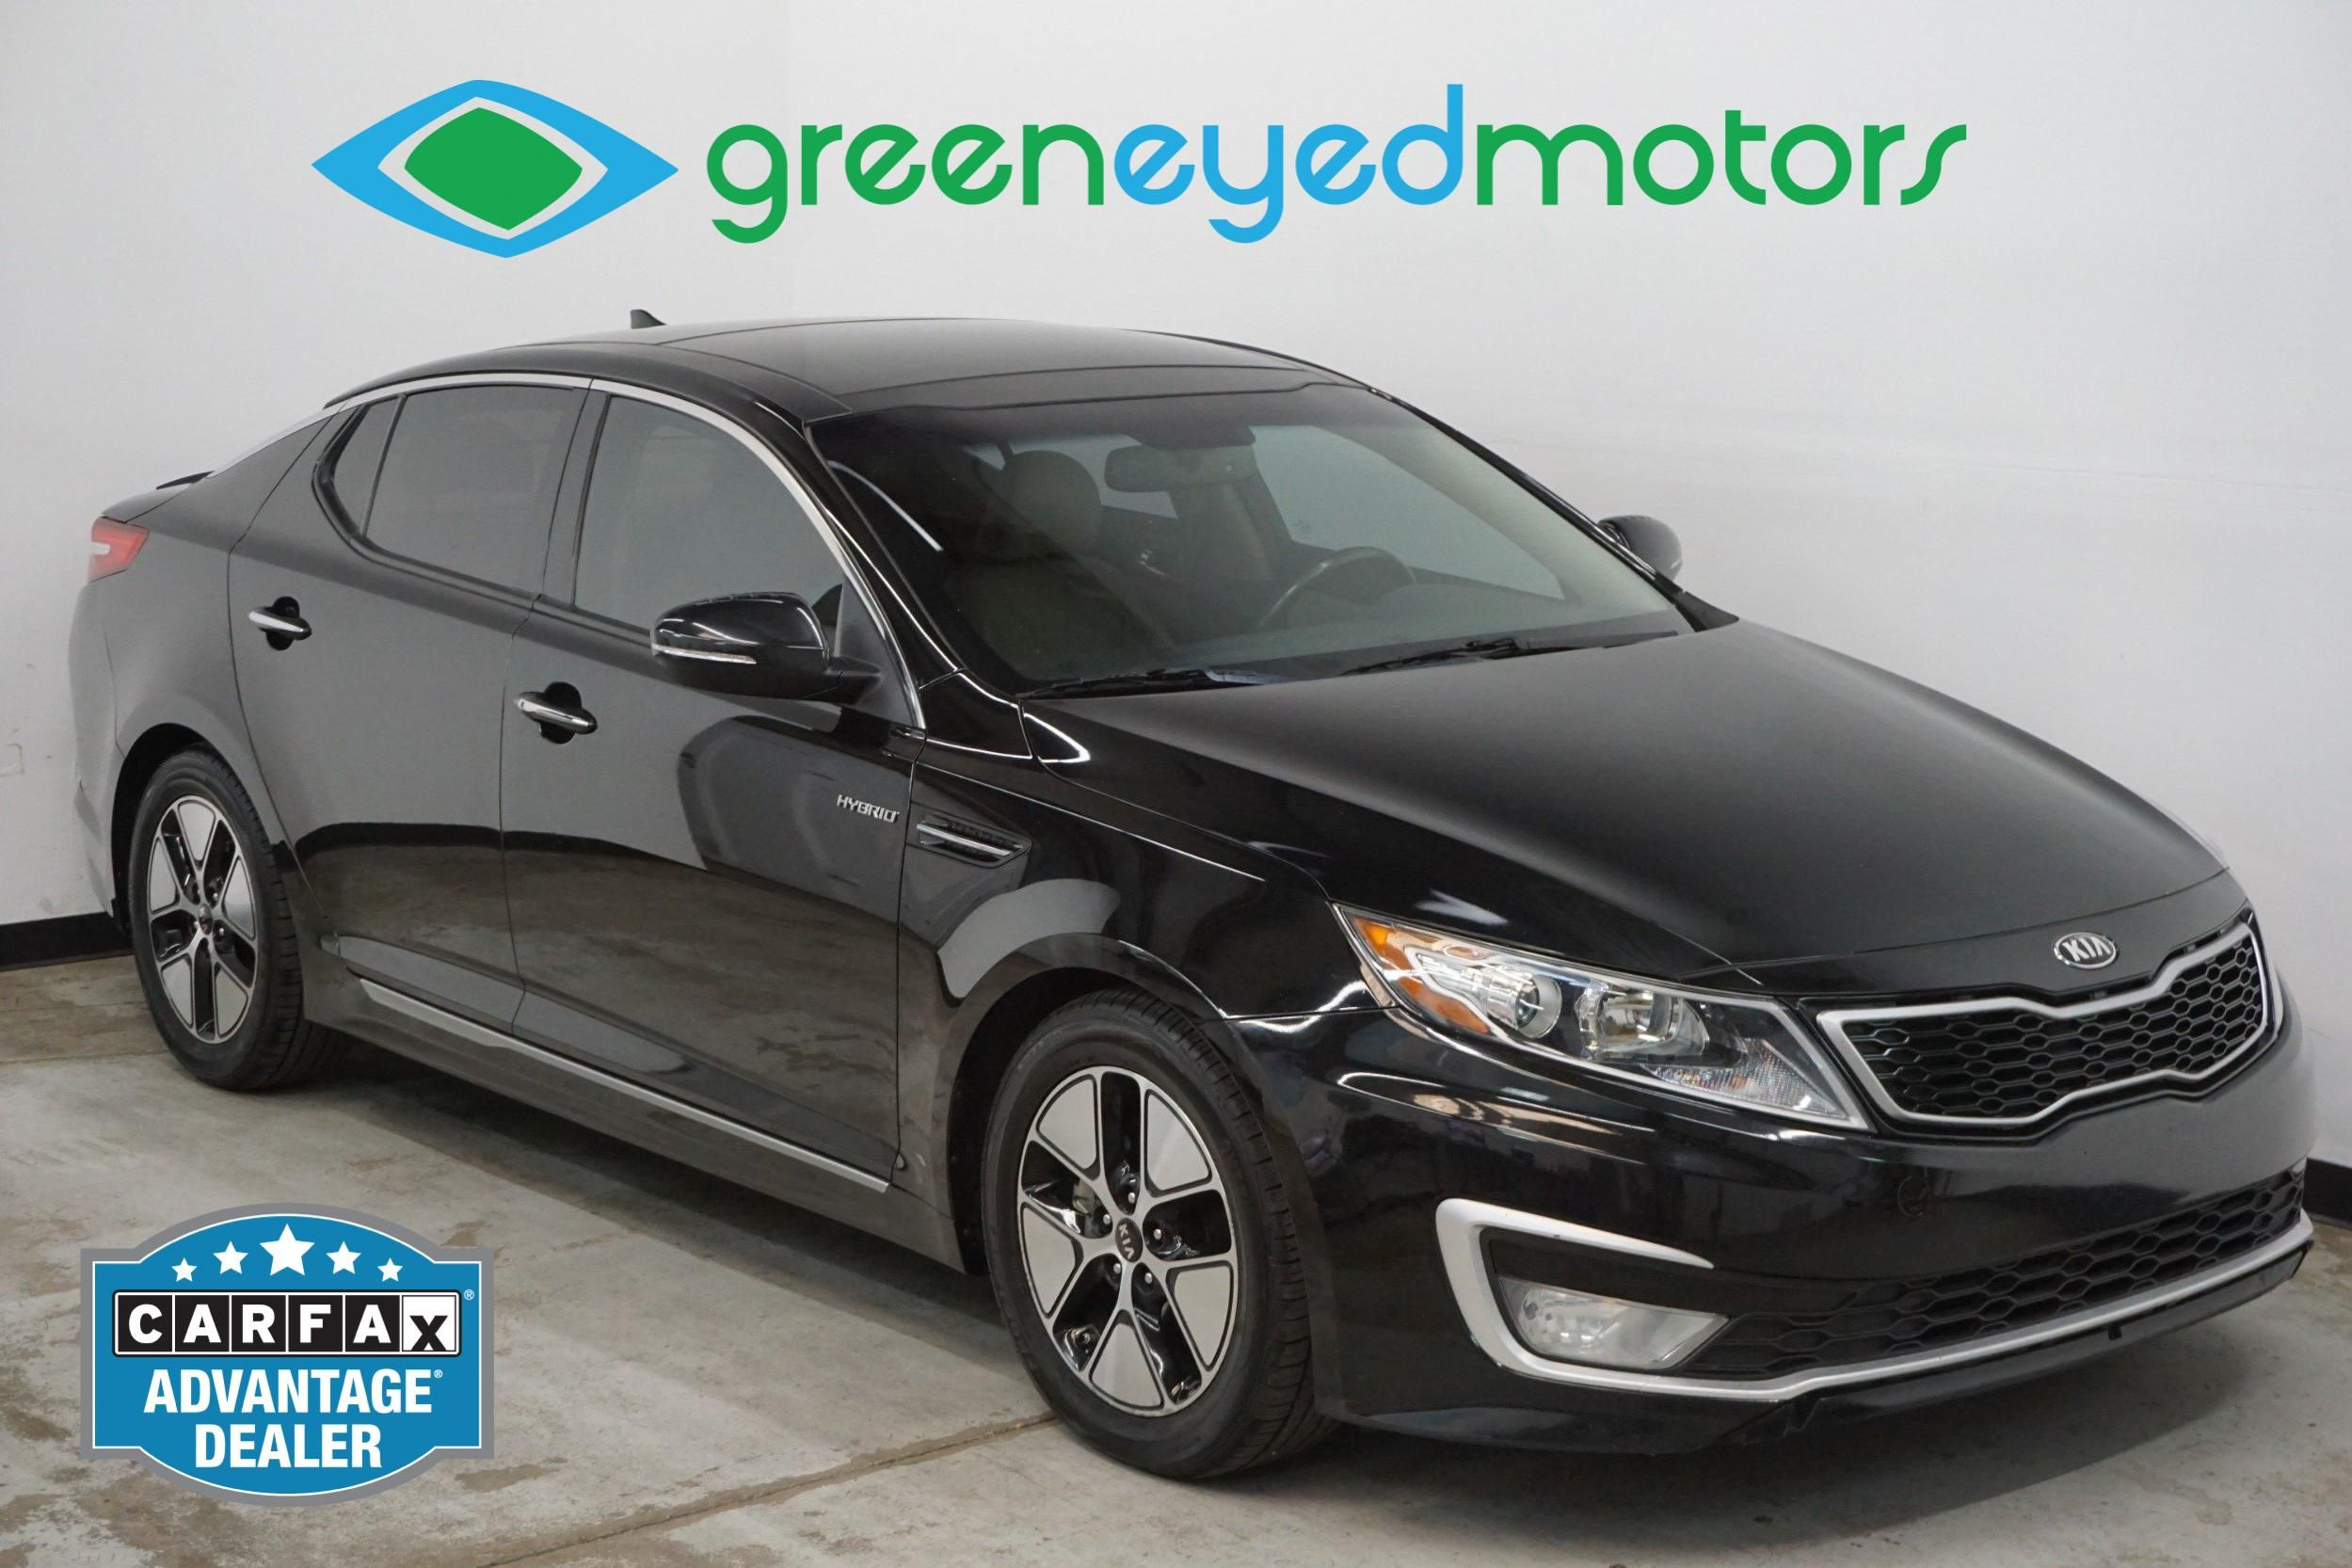 2013 Kia Optima Hybrid EX. 40 MPG   Rear View Camera   Heated/Cooled Seats    Infinity Sound!!